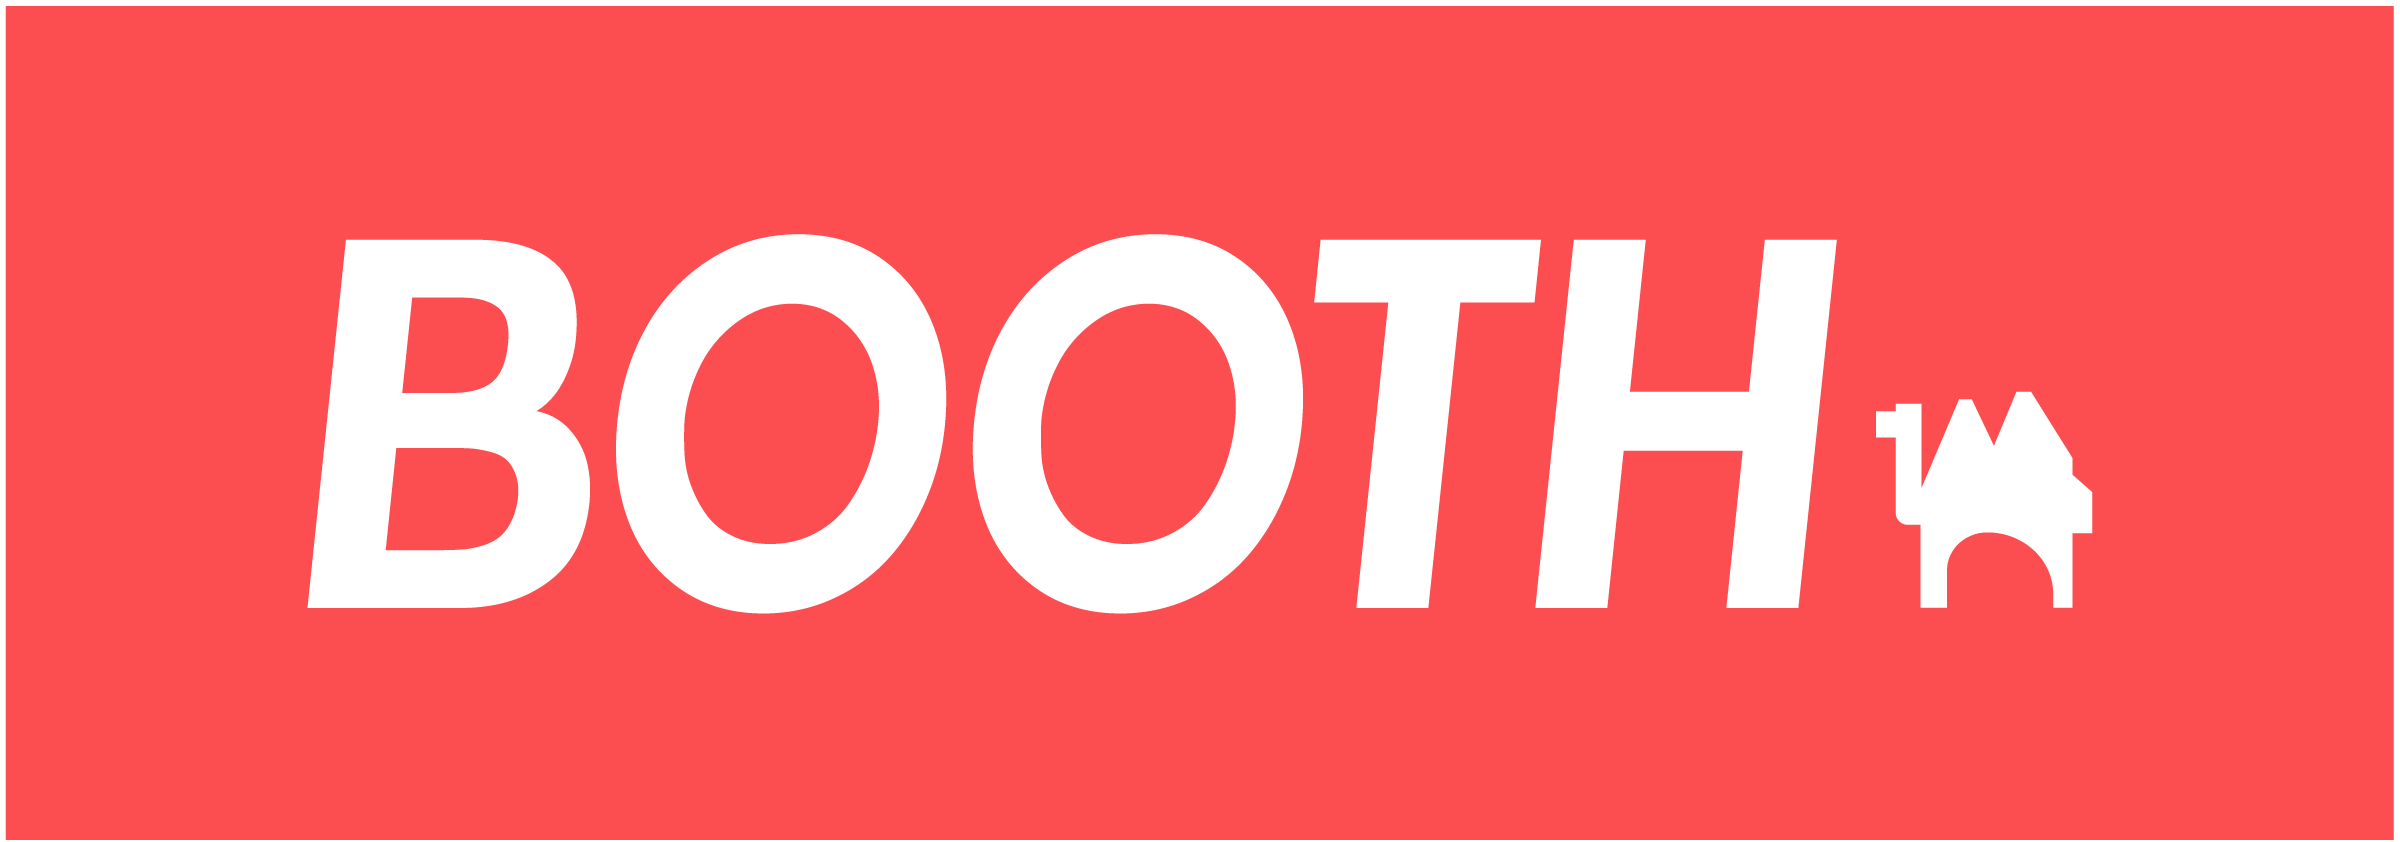 BOOTH_ロゴ